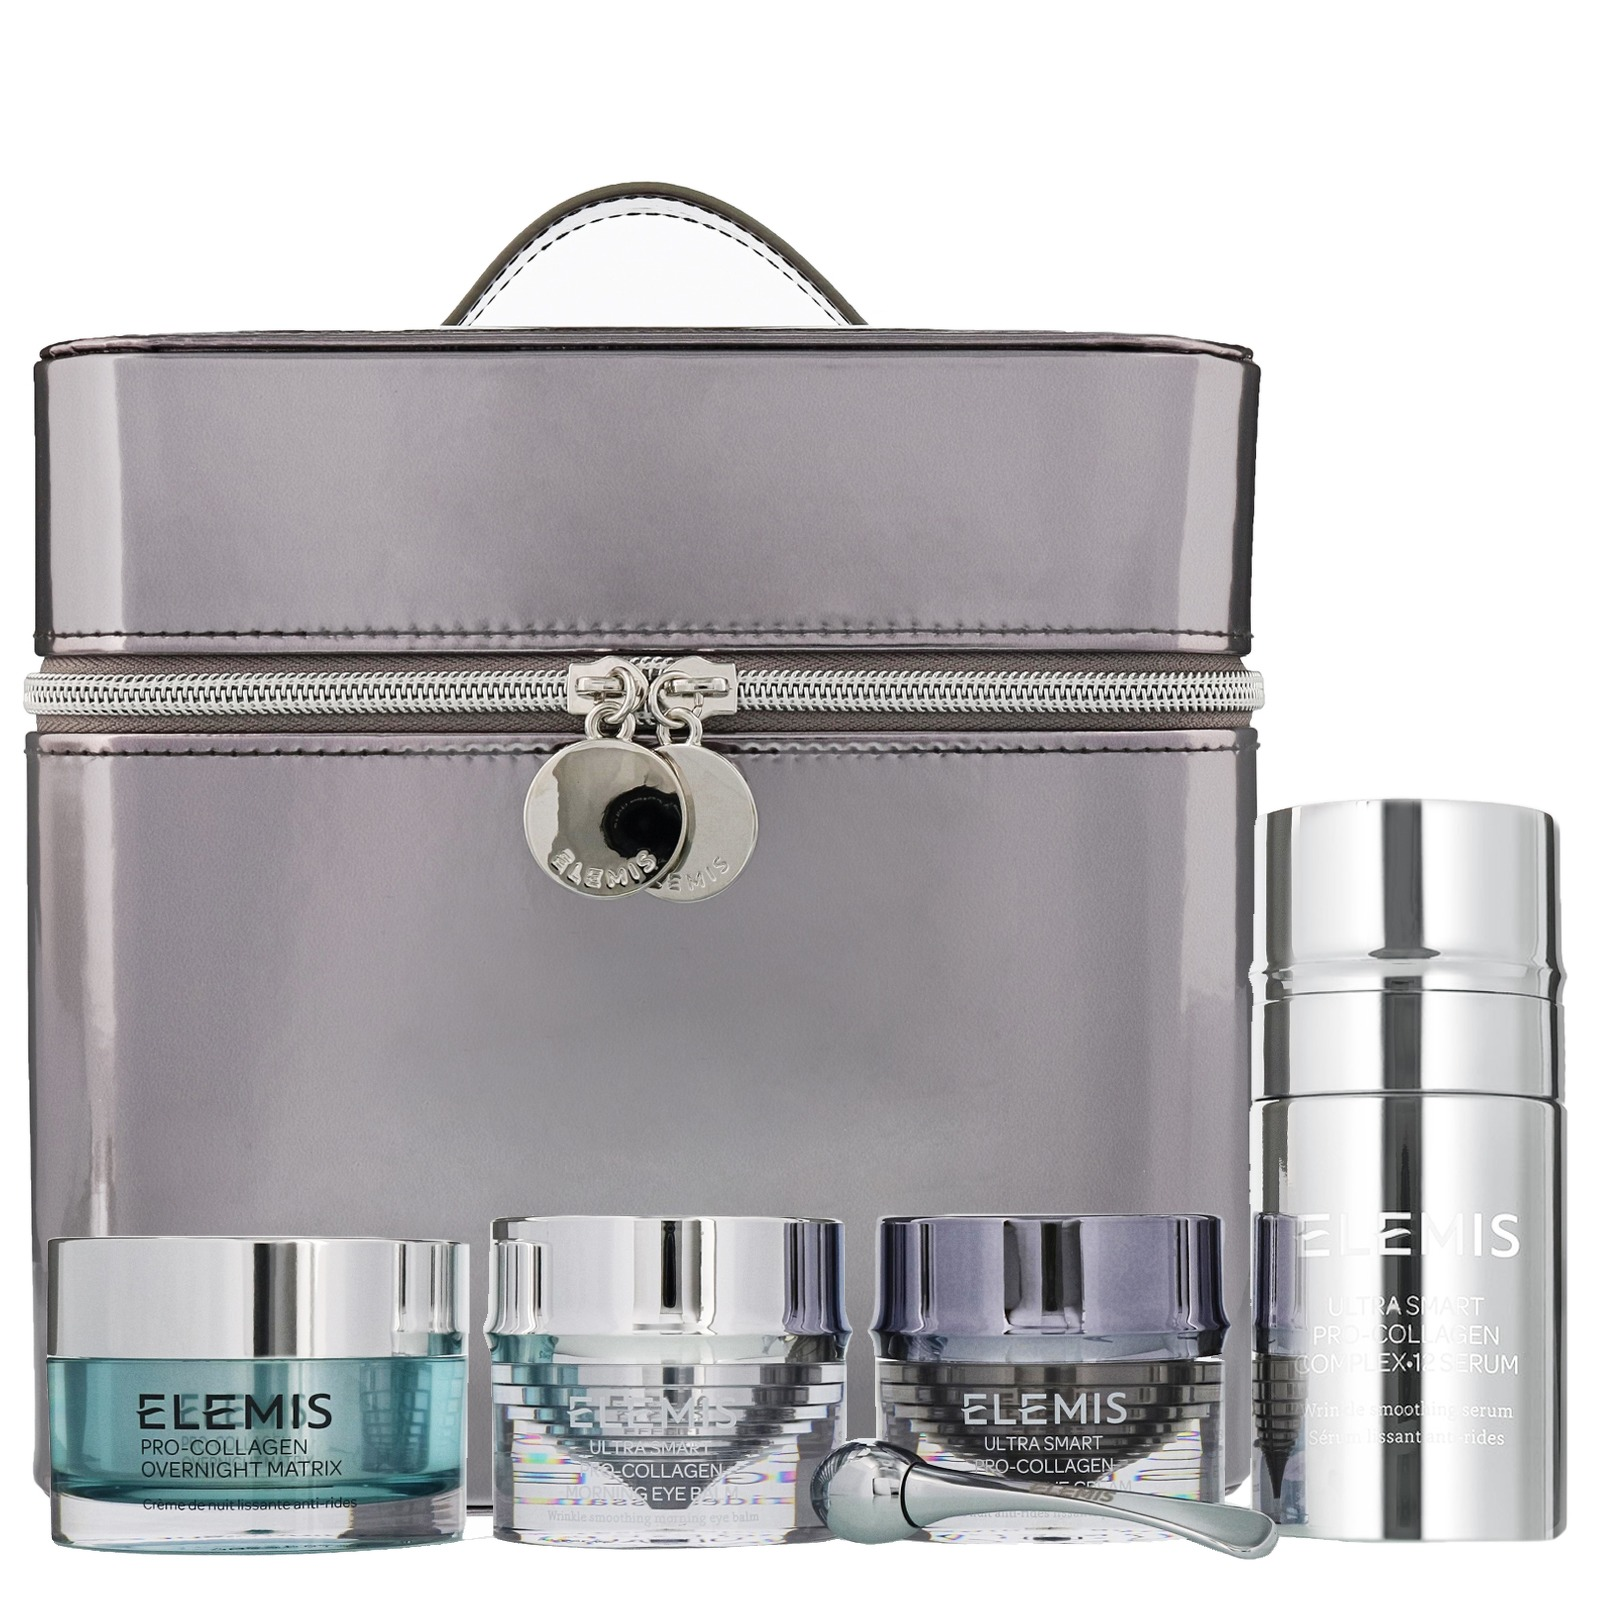 Elemis Gifts & Sets Ultra Smart Pro-Collagen Pure Brilliance (Worth £443.80)